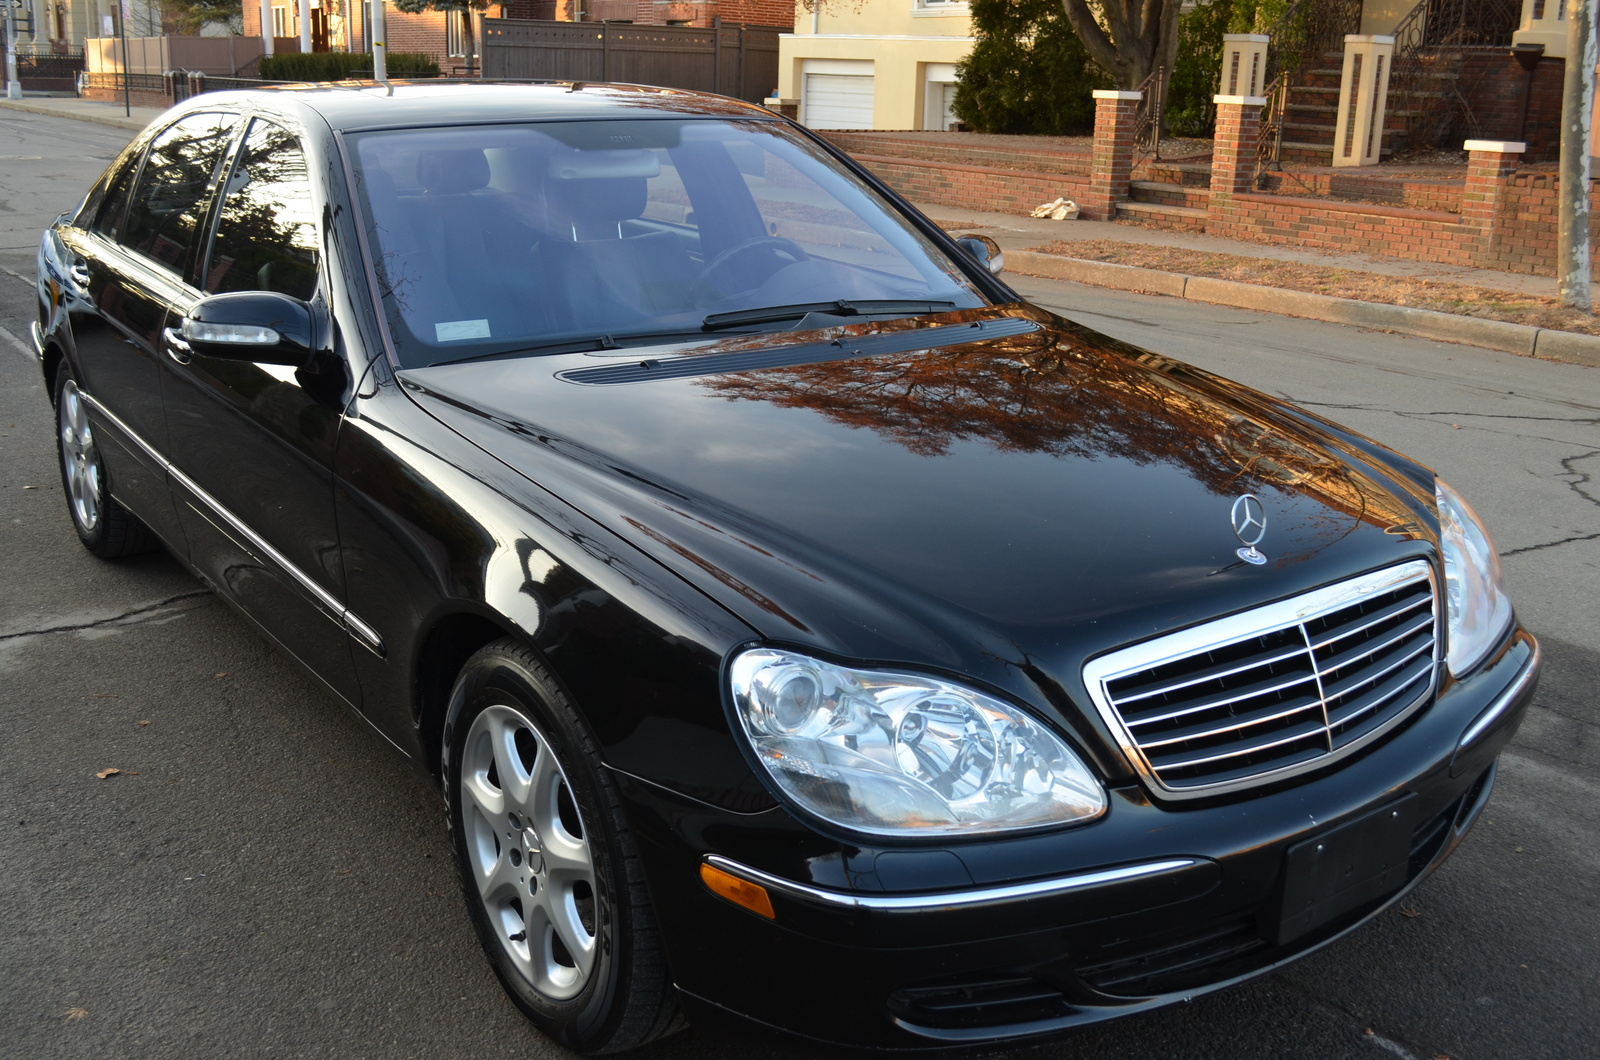 2006 mercedes benz s class exterior pictures cargurus for 2006 s430 mercedes benz